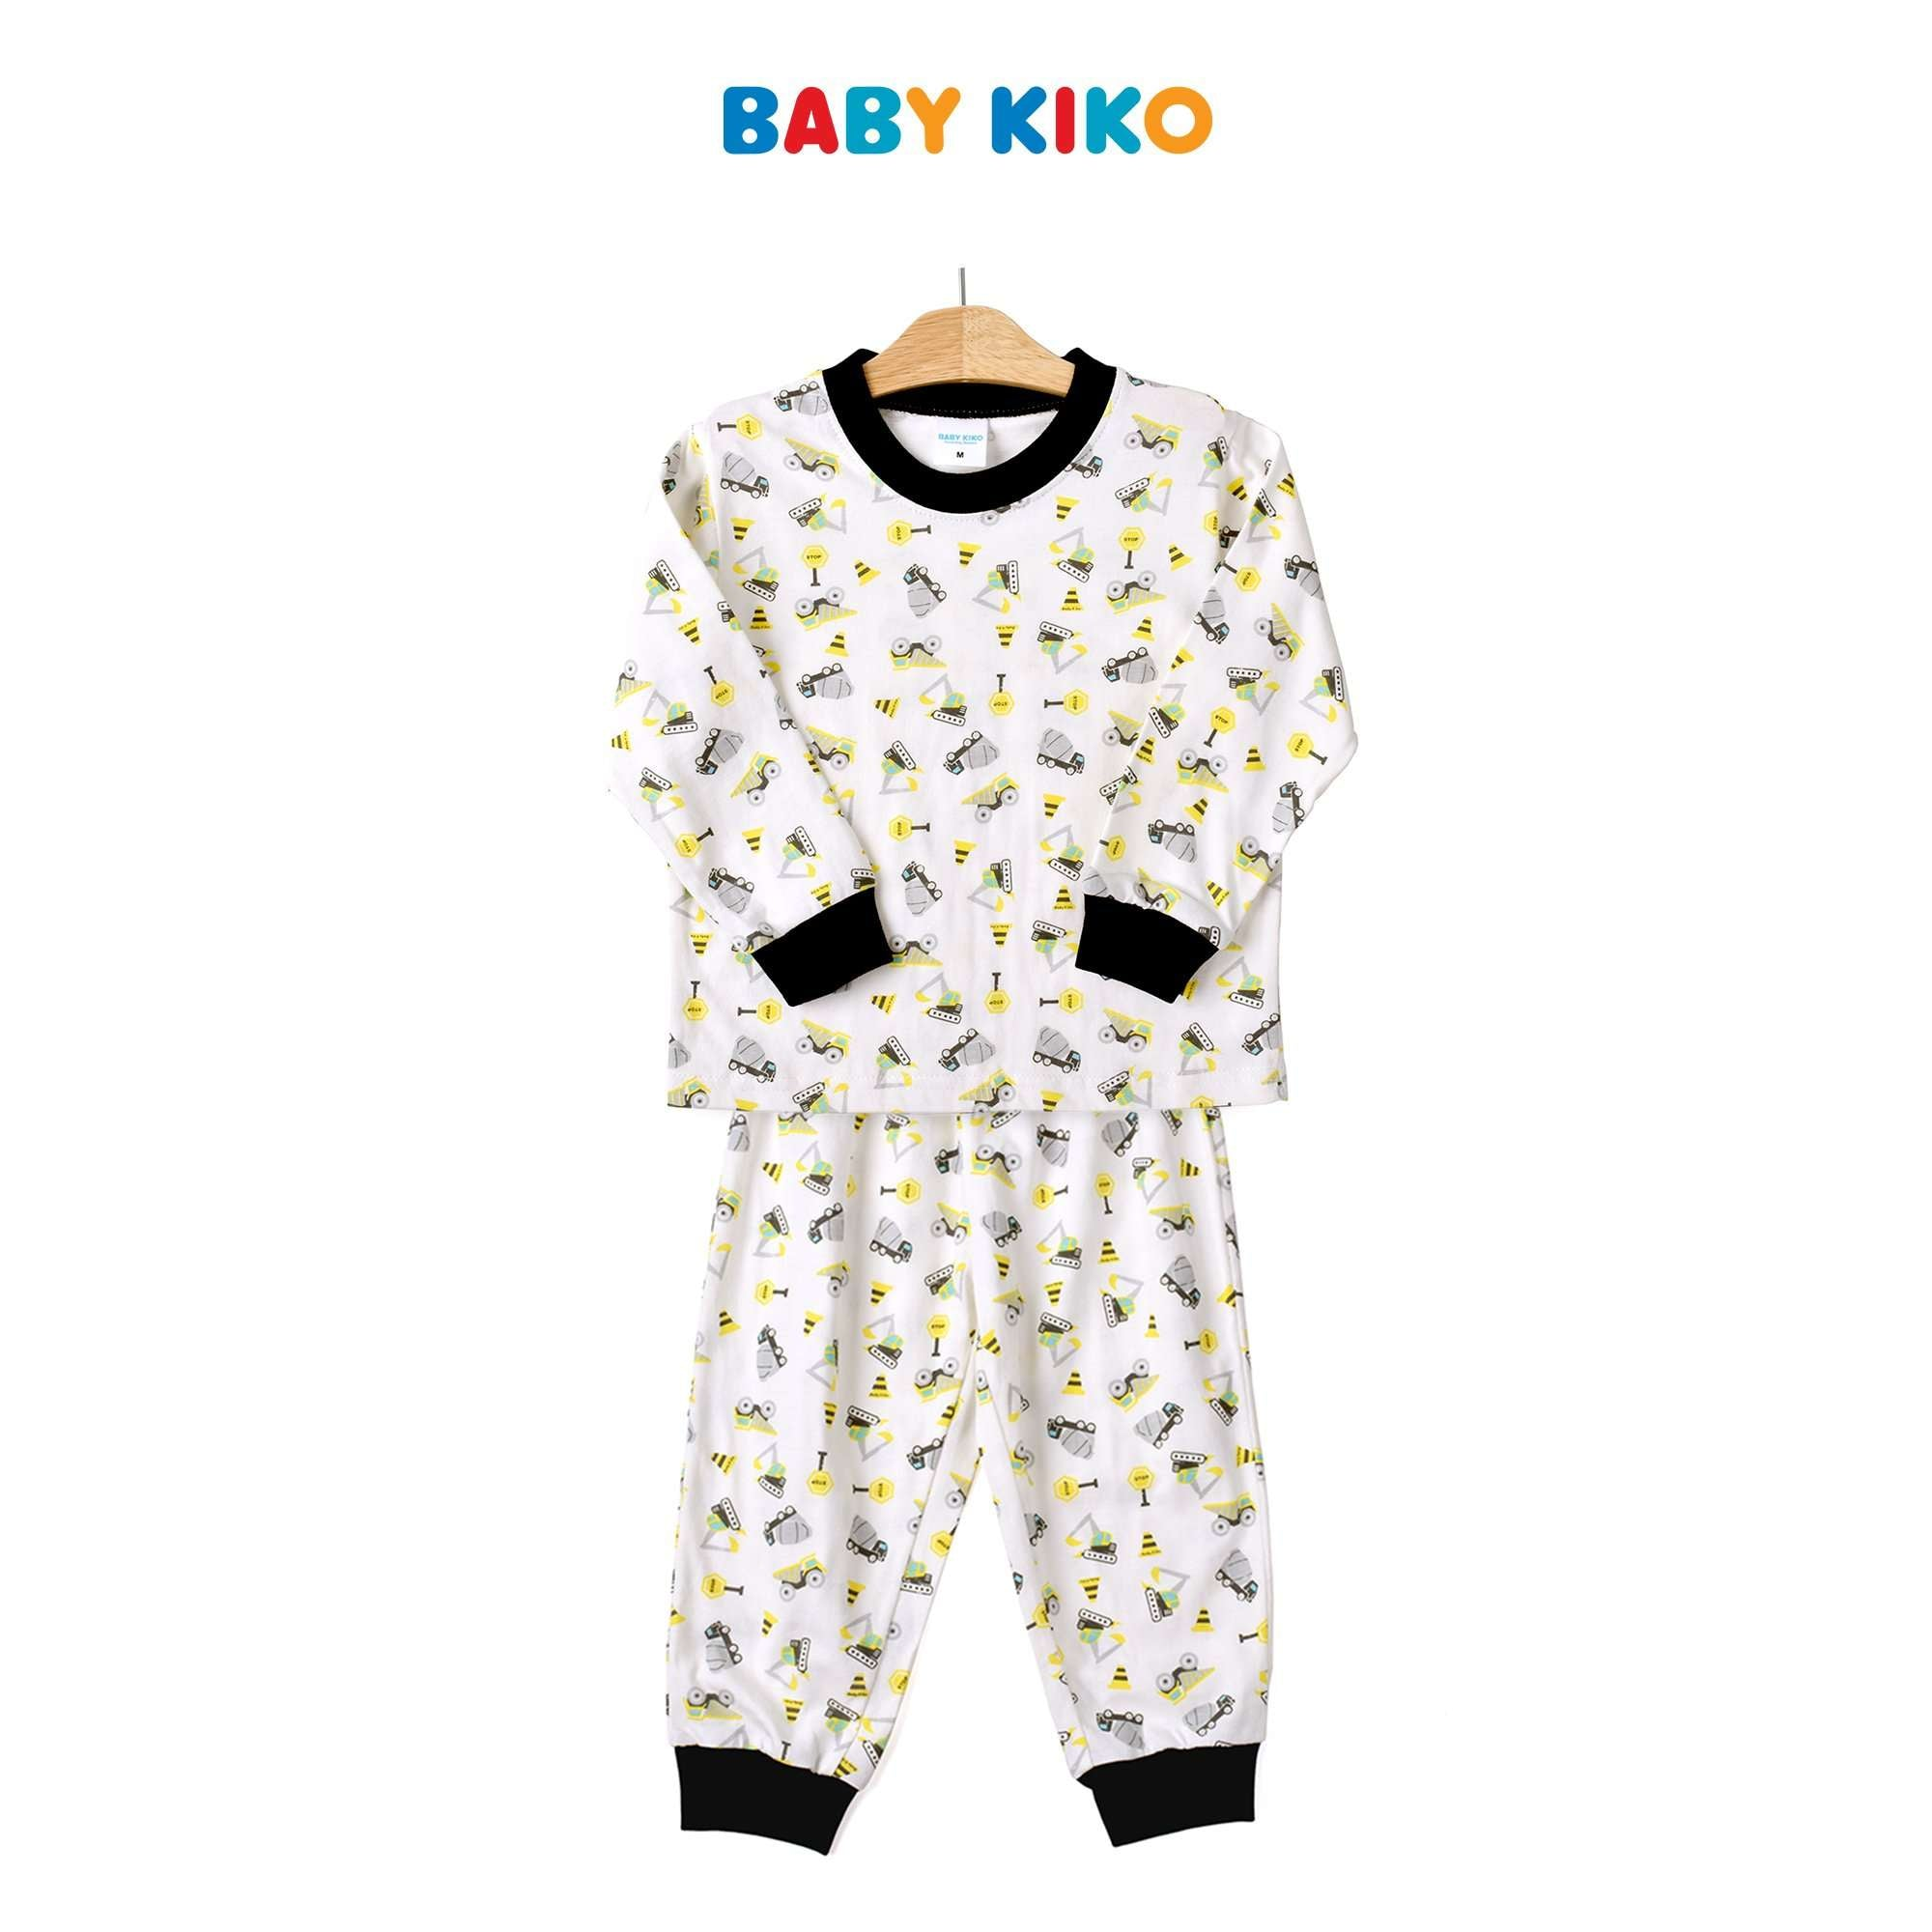 Baby KIKO Toddler Boy Short Sleeve Long Pants Suit- White 325192-431 : Buy Baby KIKO online at CMG.MY